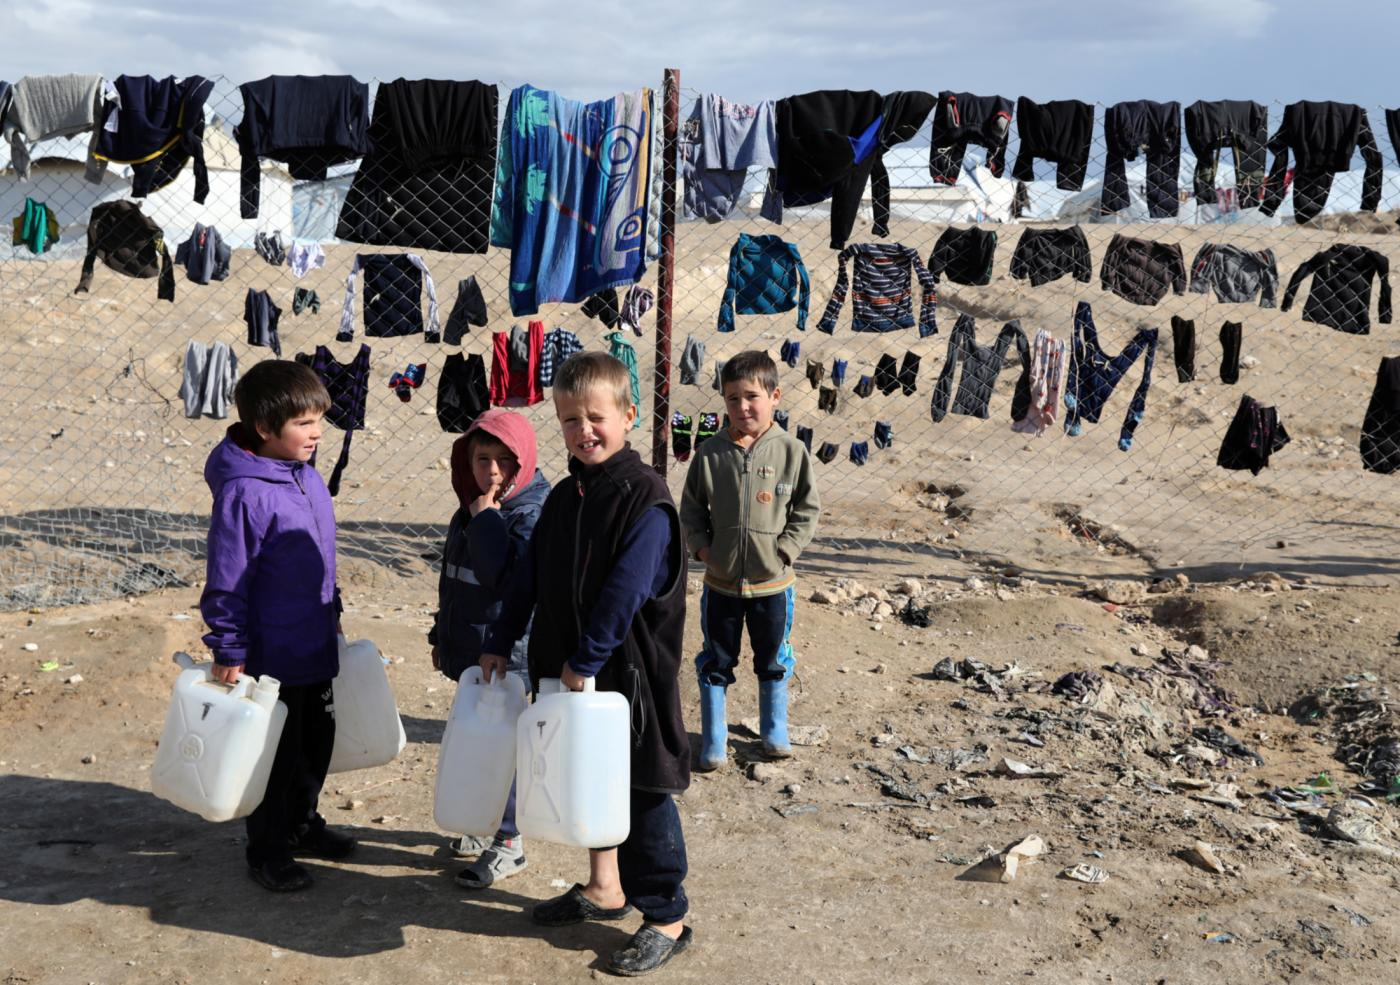 Syria: UN experts call on 57 states to repatriate women and children from squalid camps